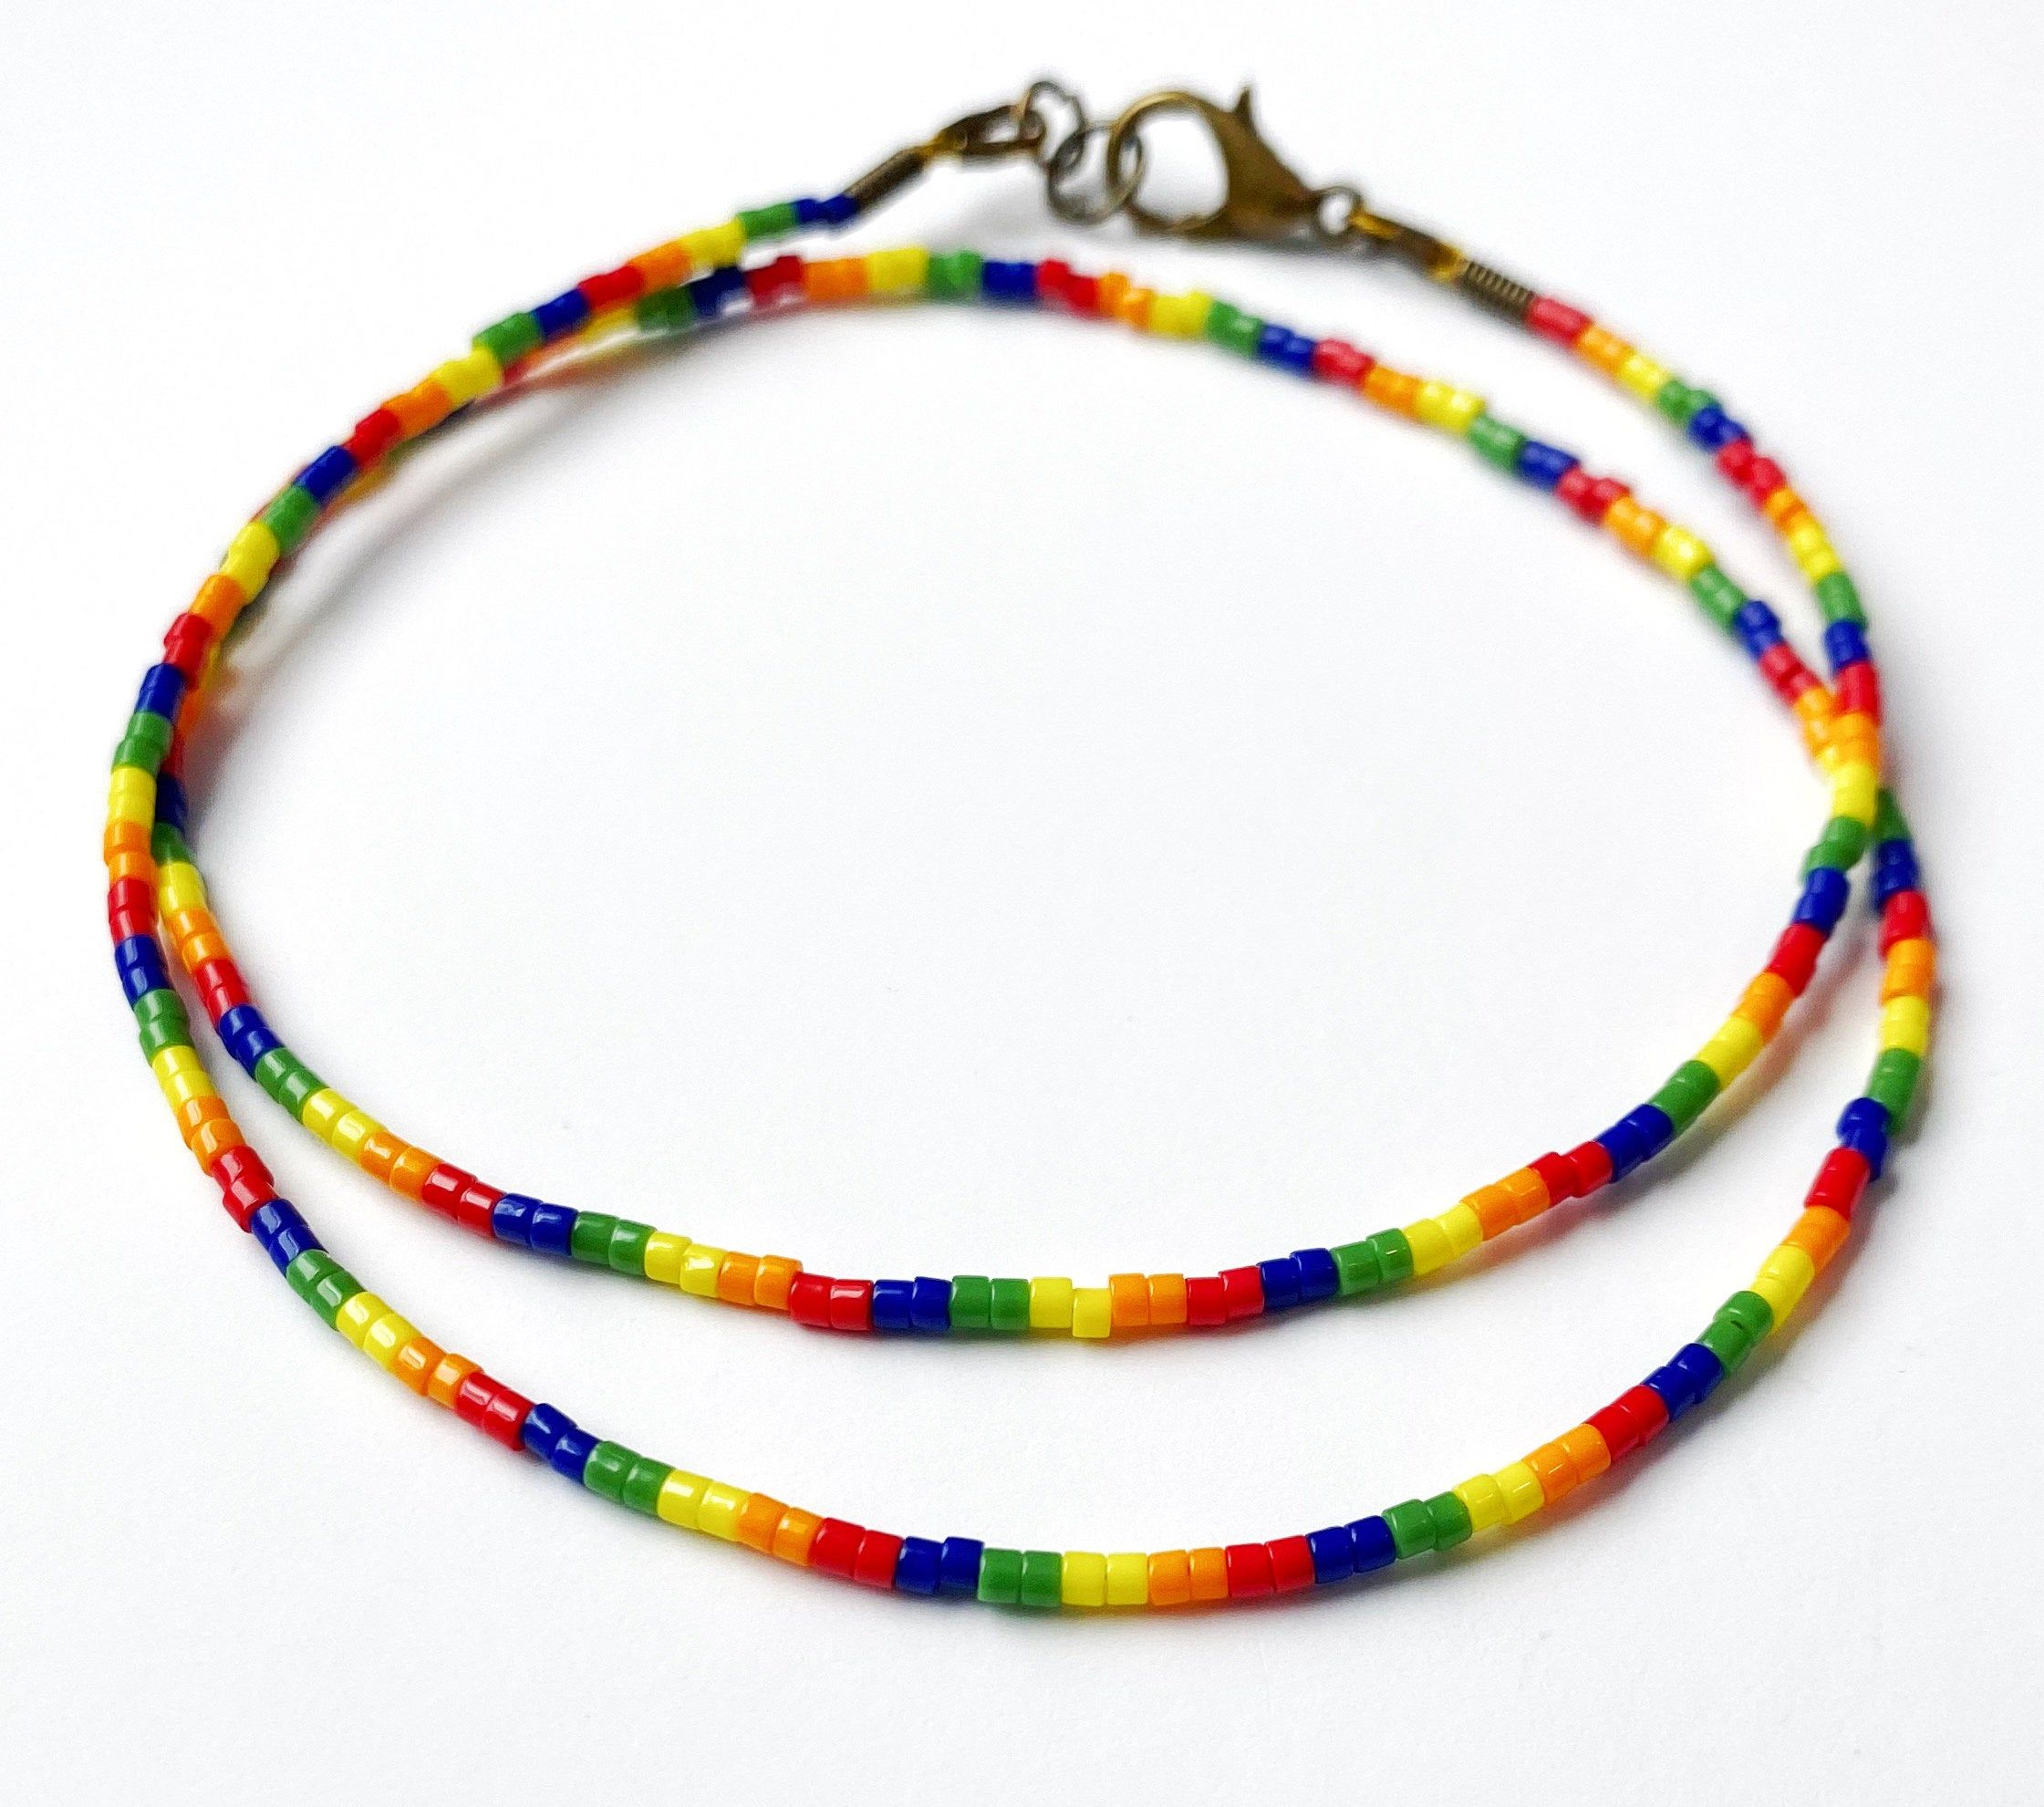 subtle lesbian pride seed bead necklace